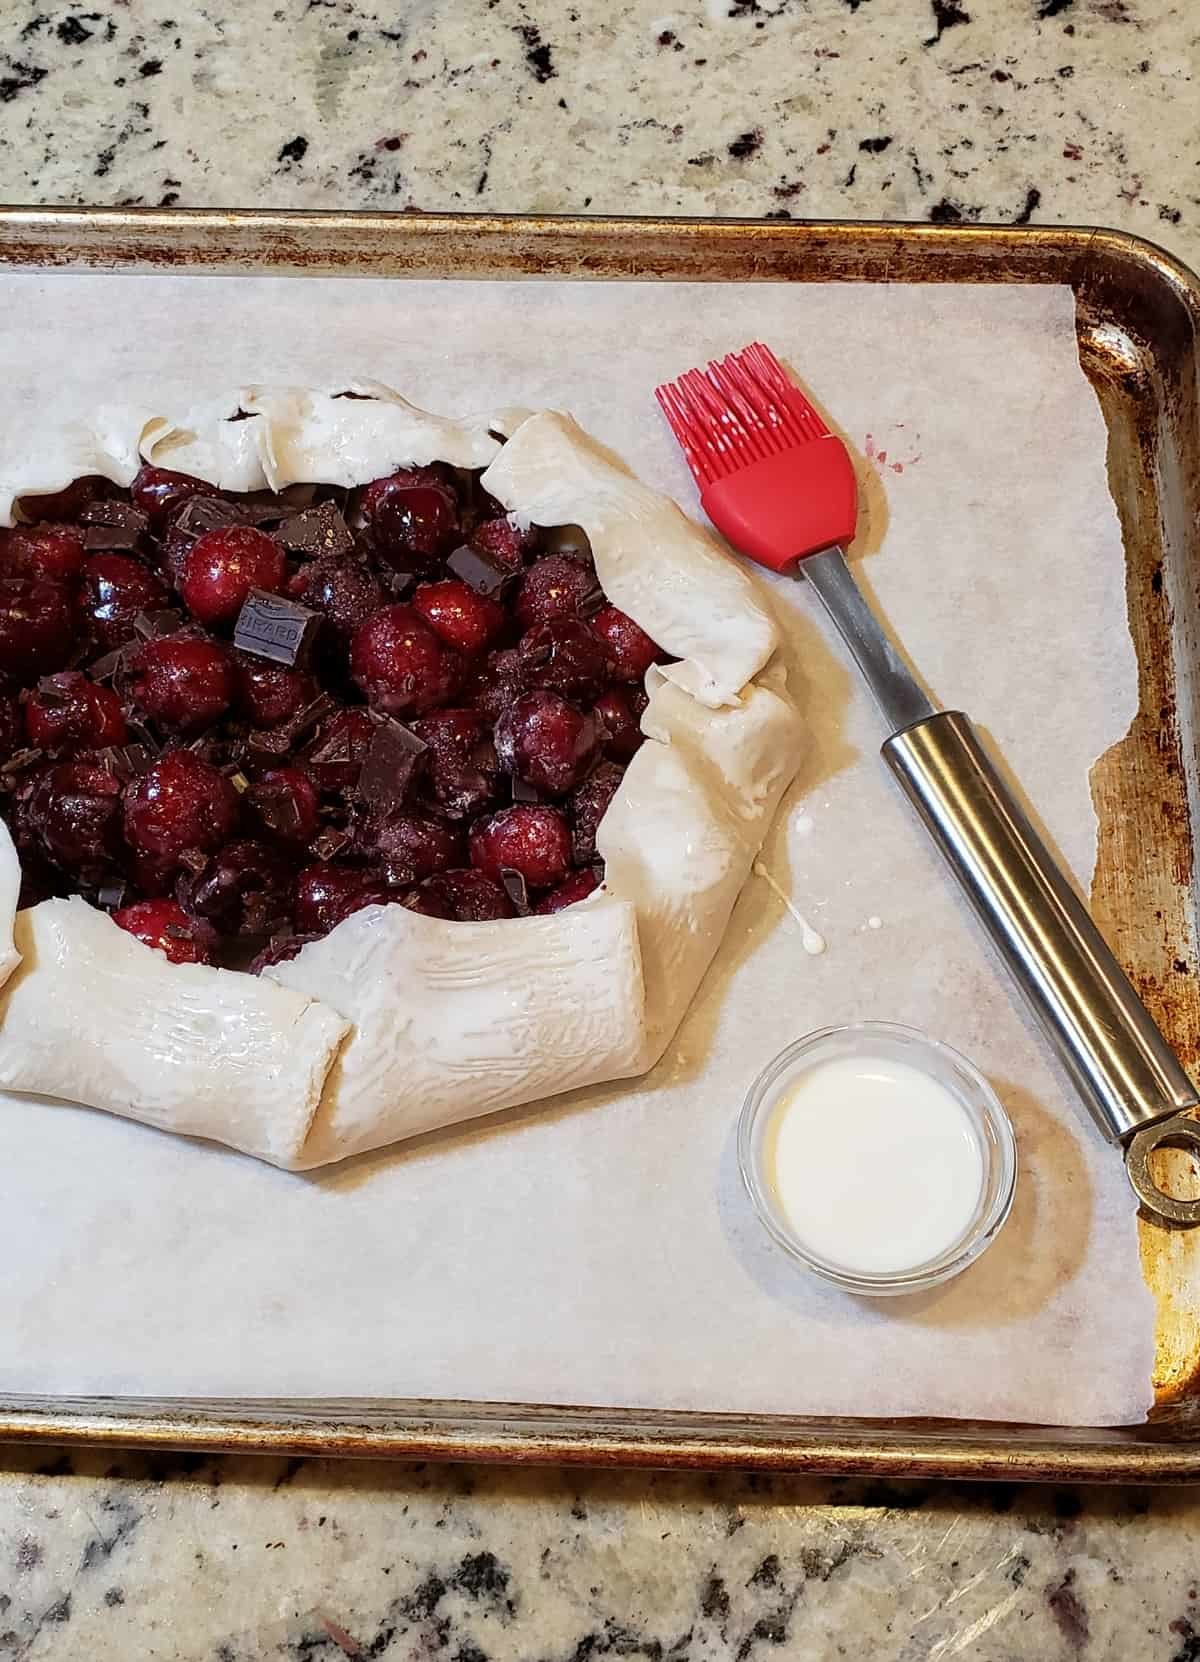 uncooked cherry galette on parchment with red pastry brush